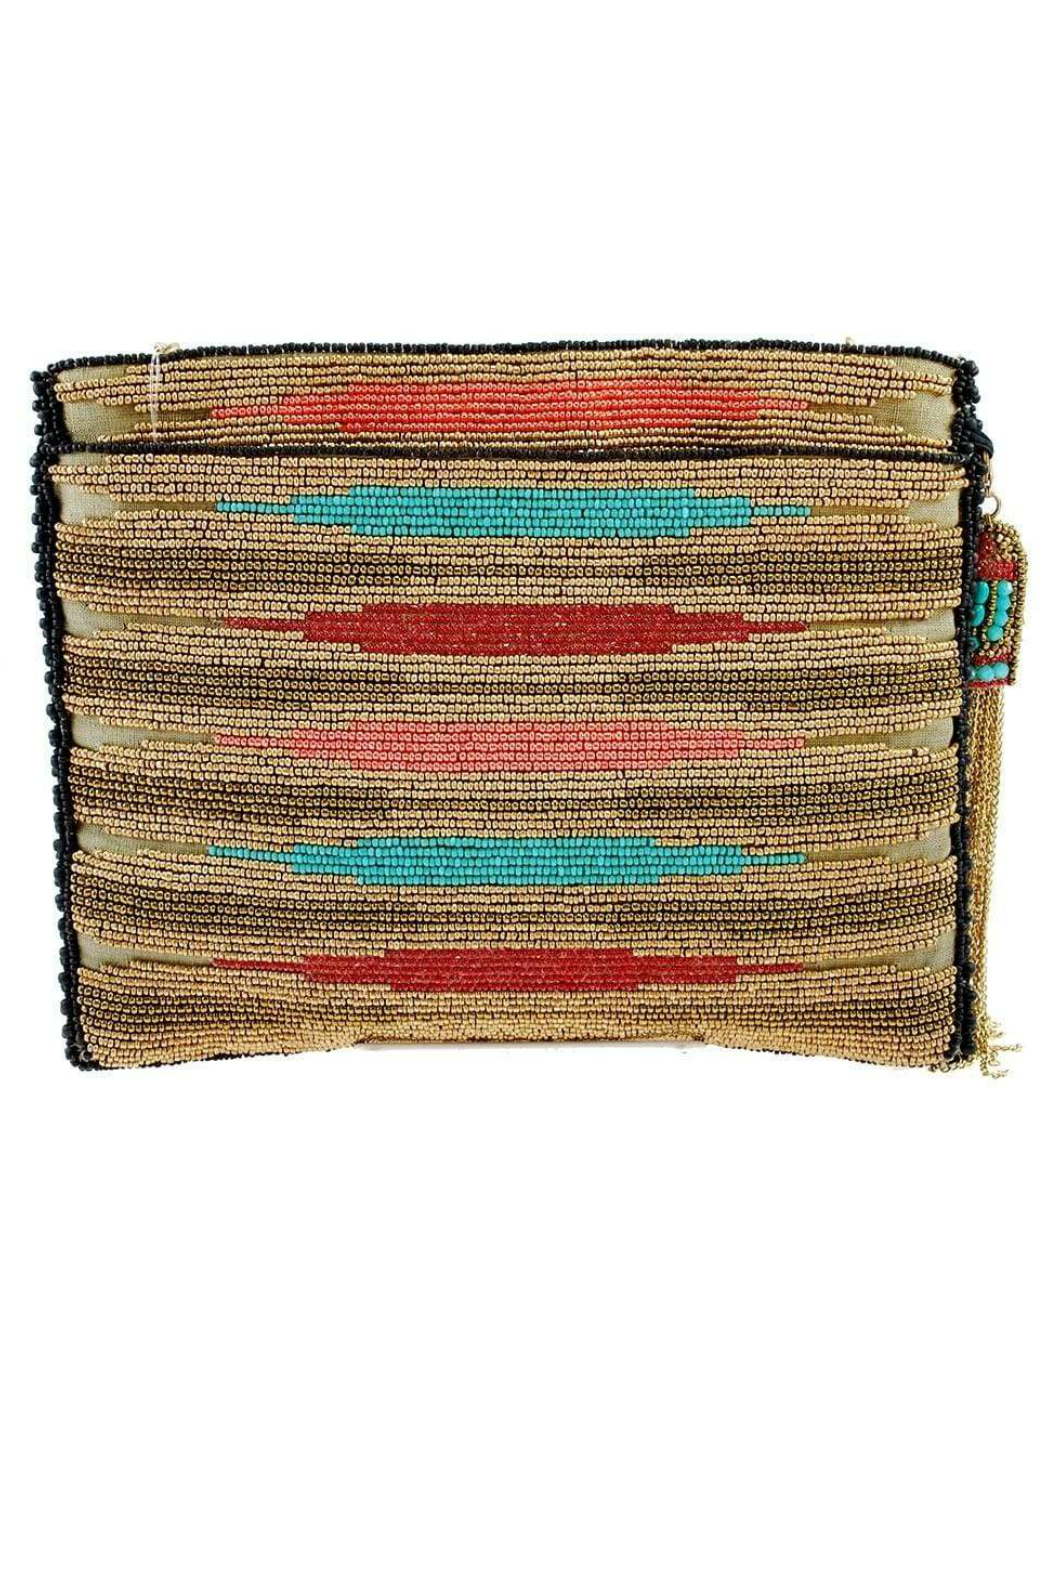 Mary Frances  Frida Beaded-Embroidered Crossbody Clutch Handbag - Front Full Image